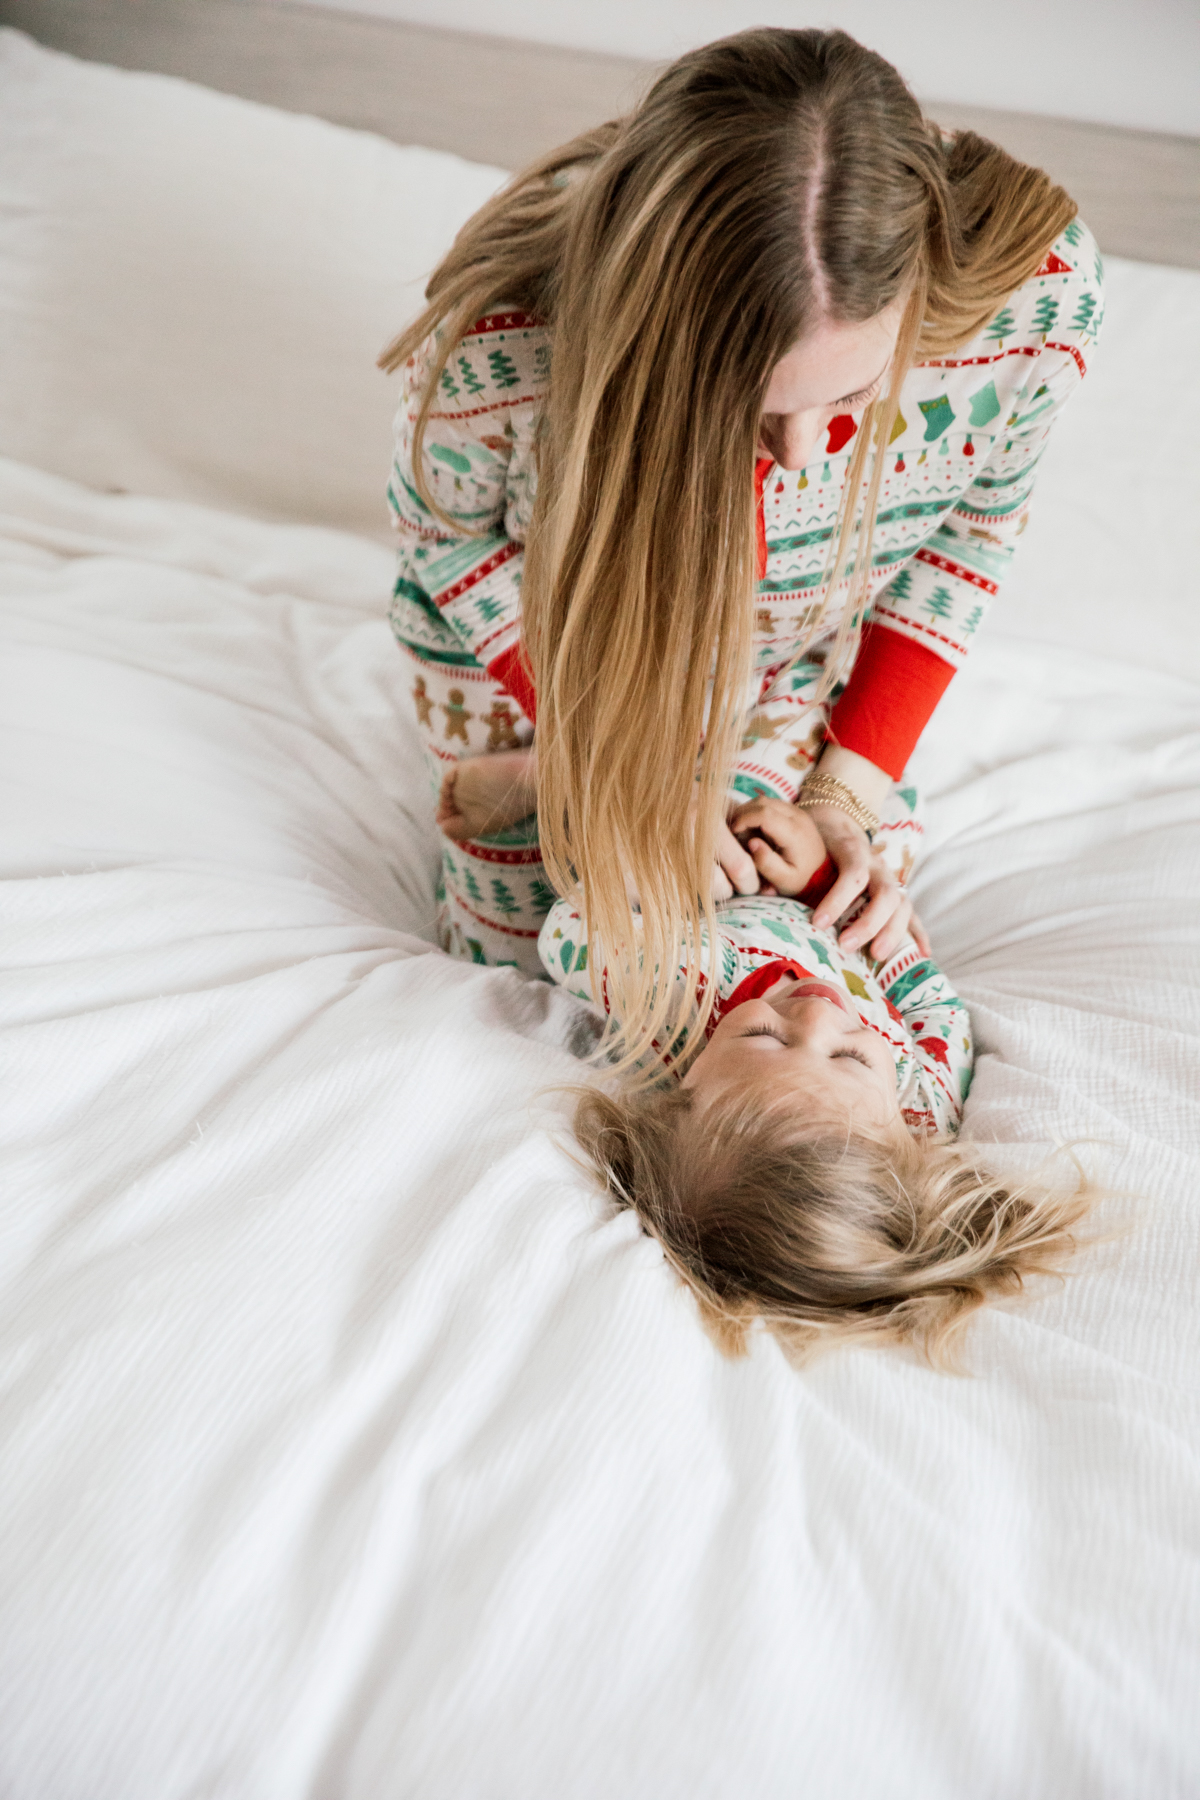 Mother and son in matching Holiday pajamas laughing on the bed